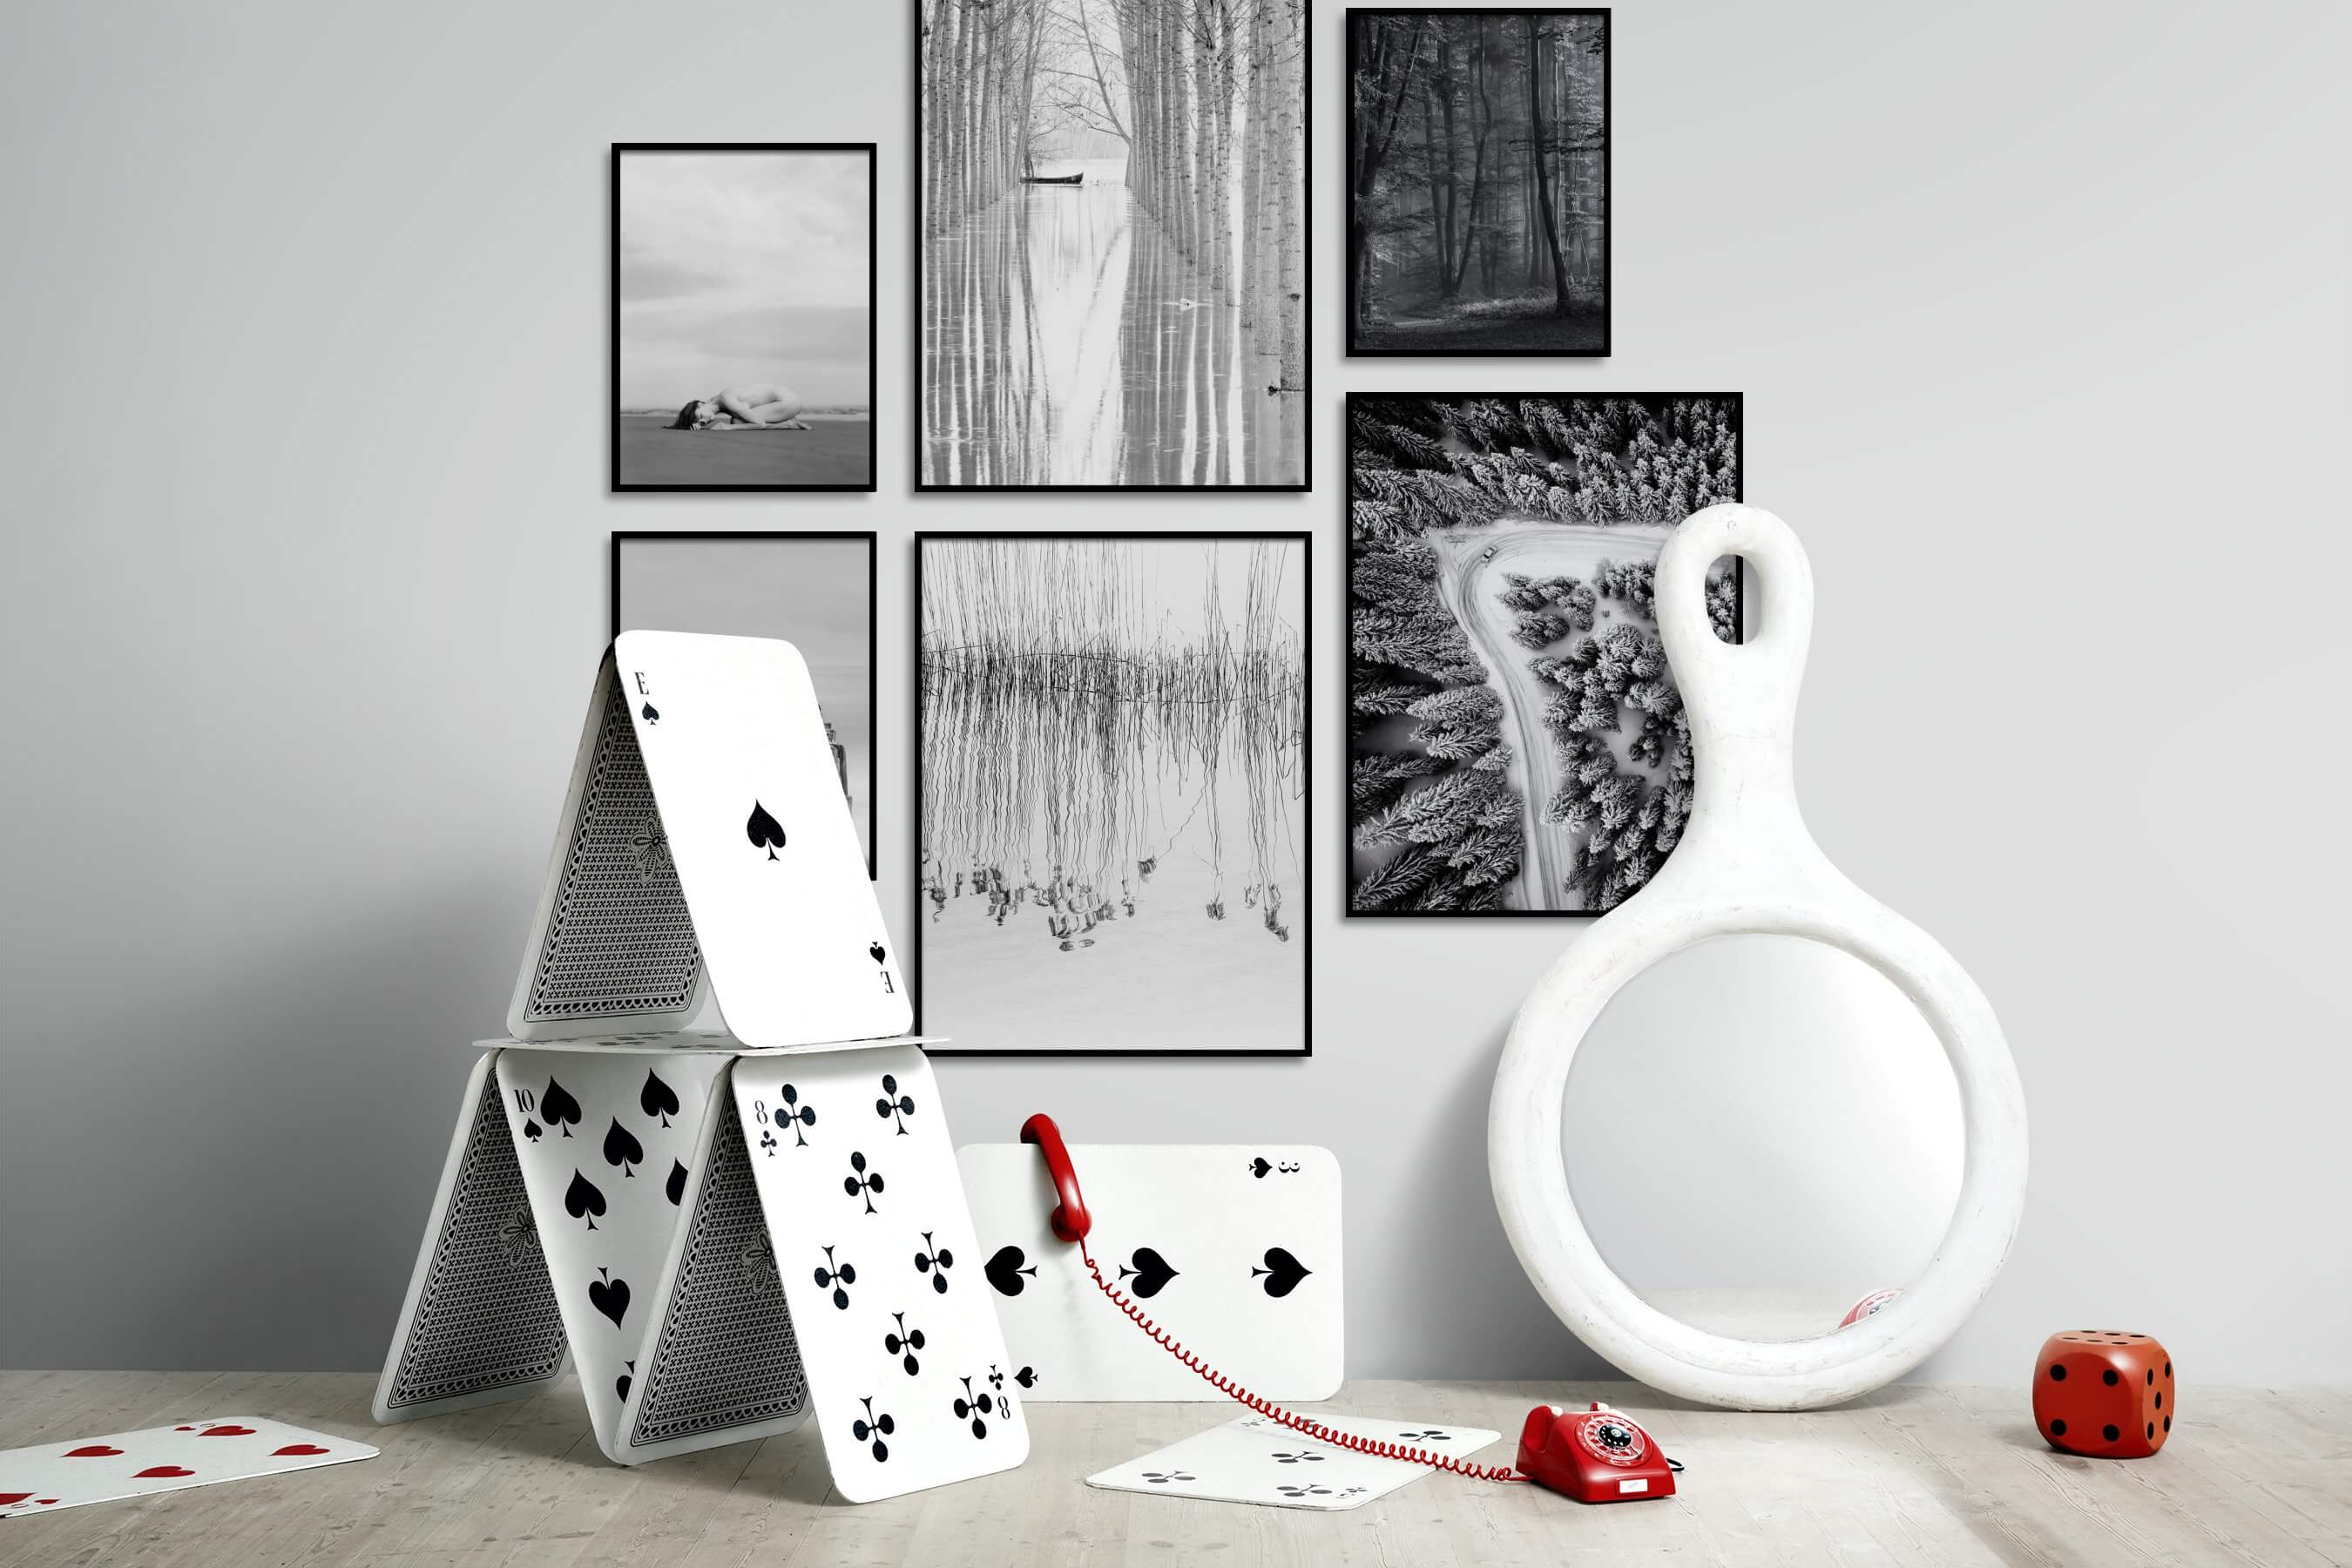 Gallery wall idea with six framed pictures arranged on a wall depicting Fashion & Beauty, Black & White, For the Minimalist, Beach & Water, Nature, Mindfulness, and For the Moderate